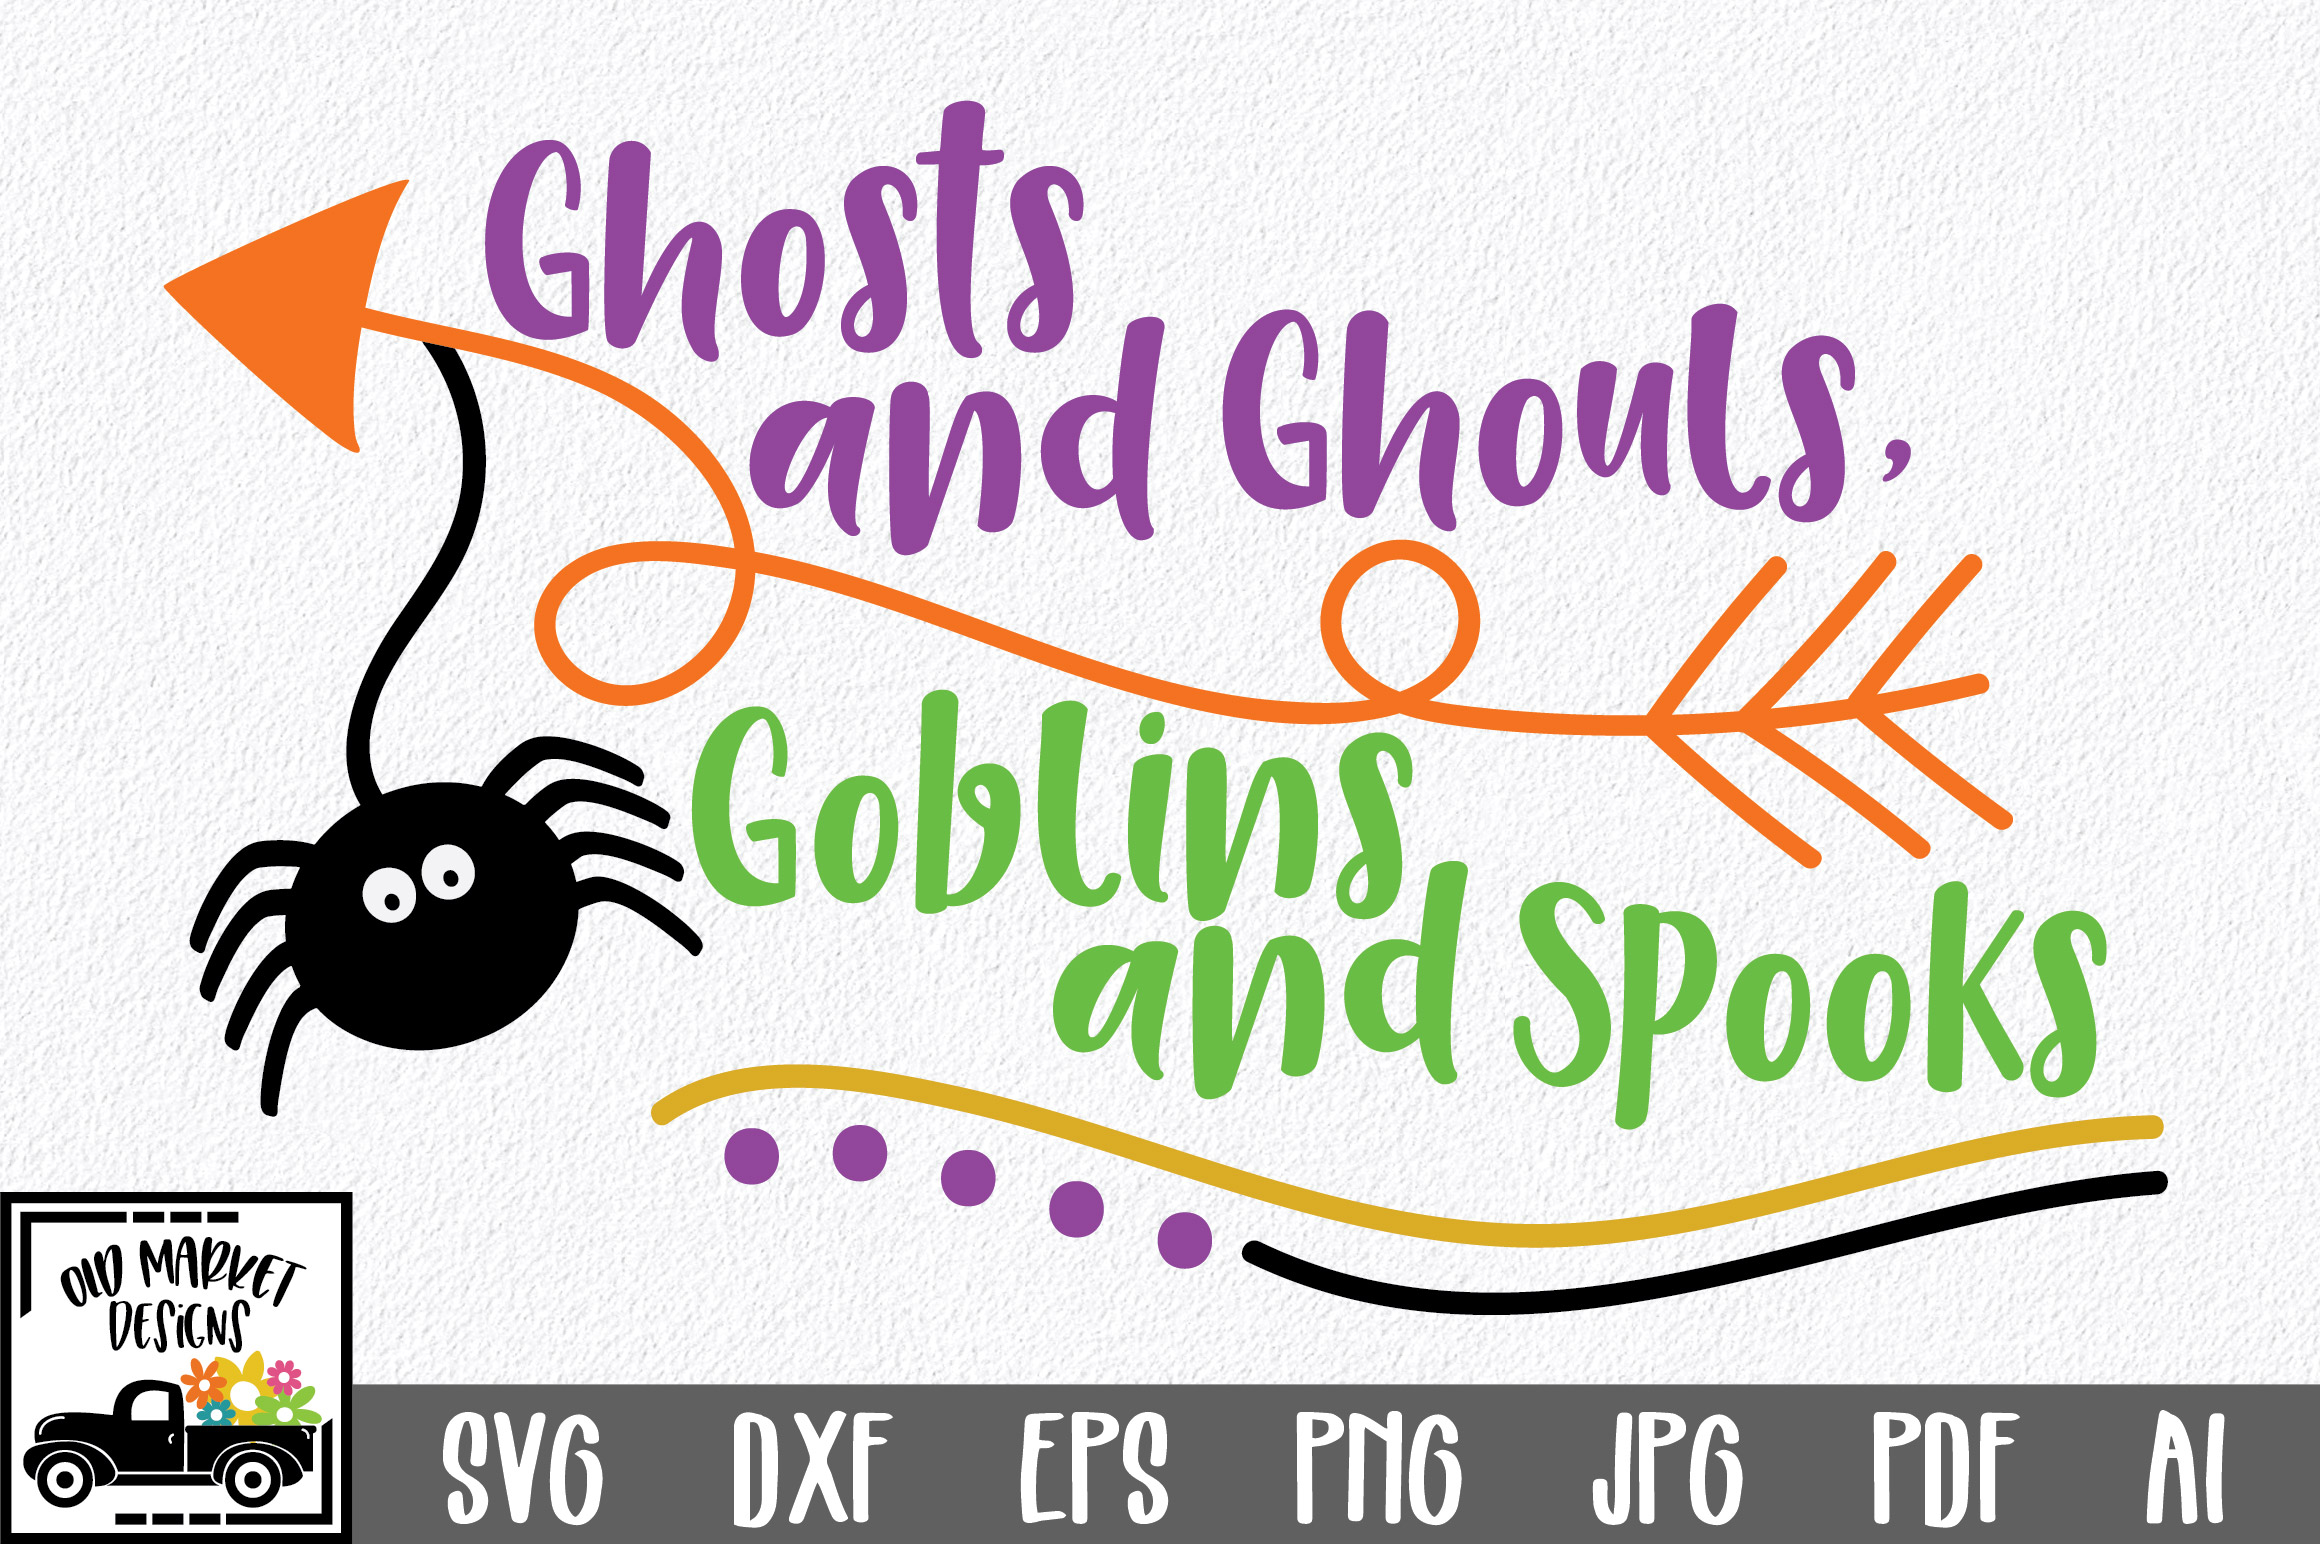 Download Free Ghosts And Ghouls Goblins And Spooks Graphic By Oldmarketdesigns for Cricut Explore, Silhouette and other cutting machines.